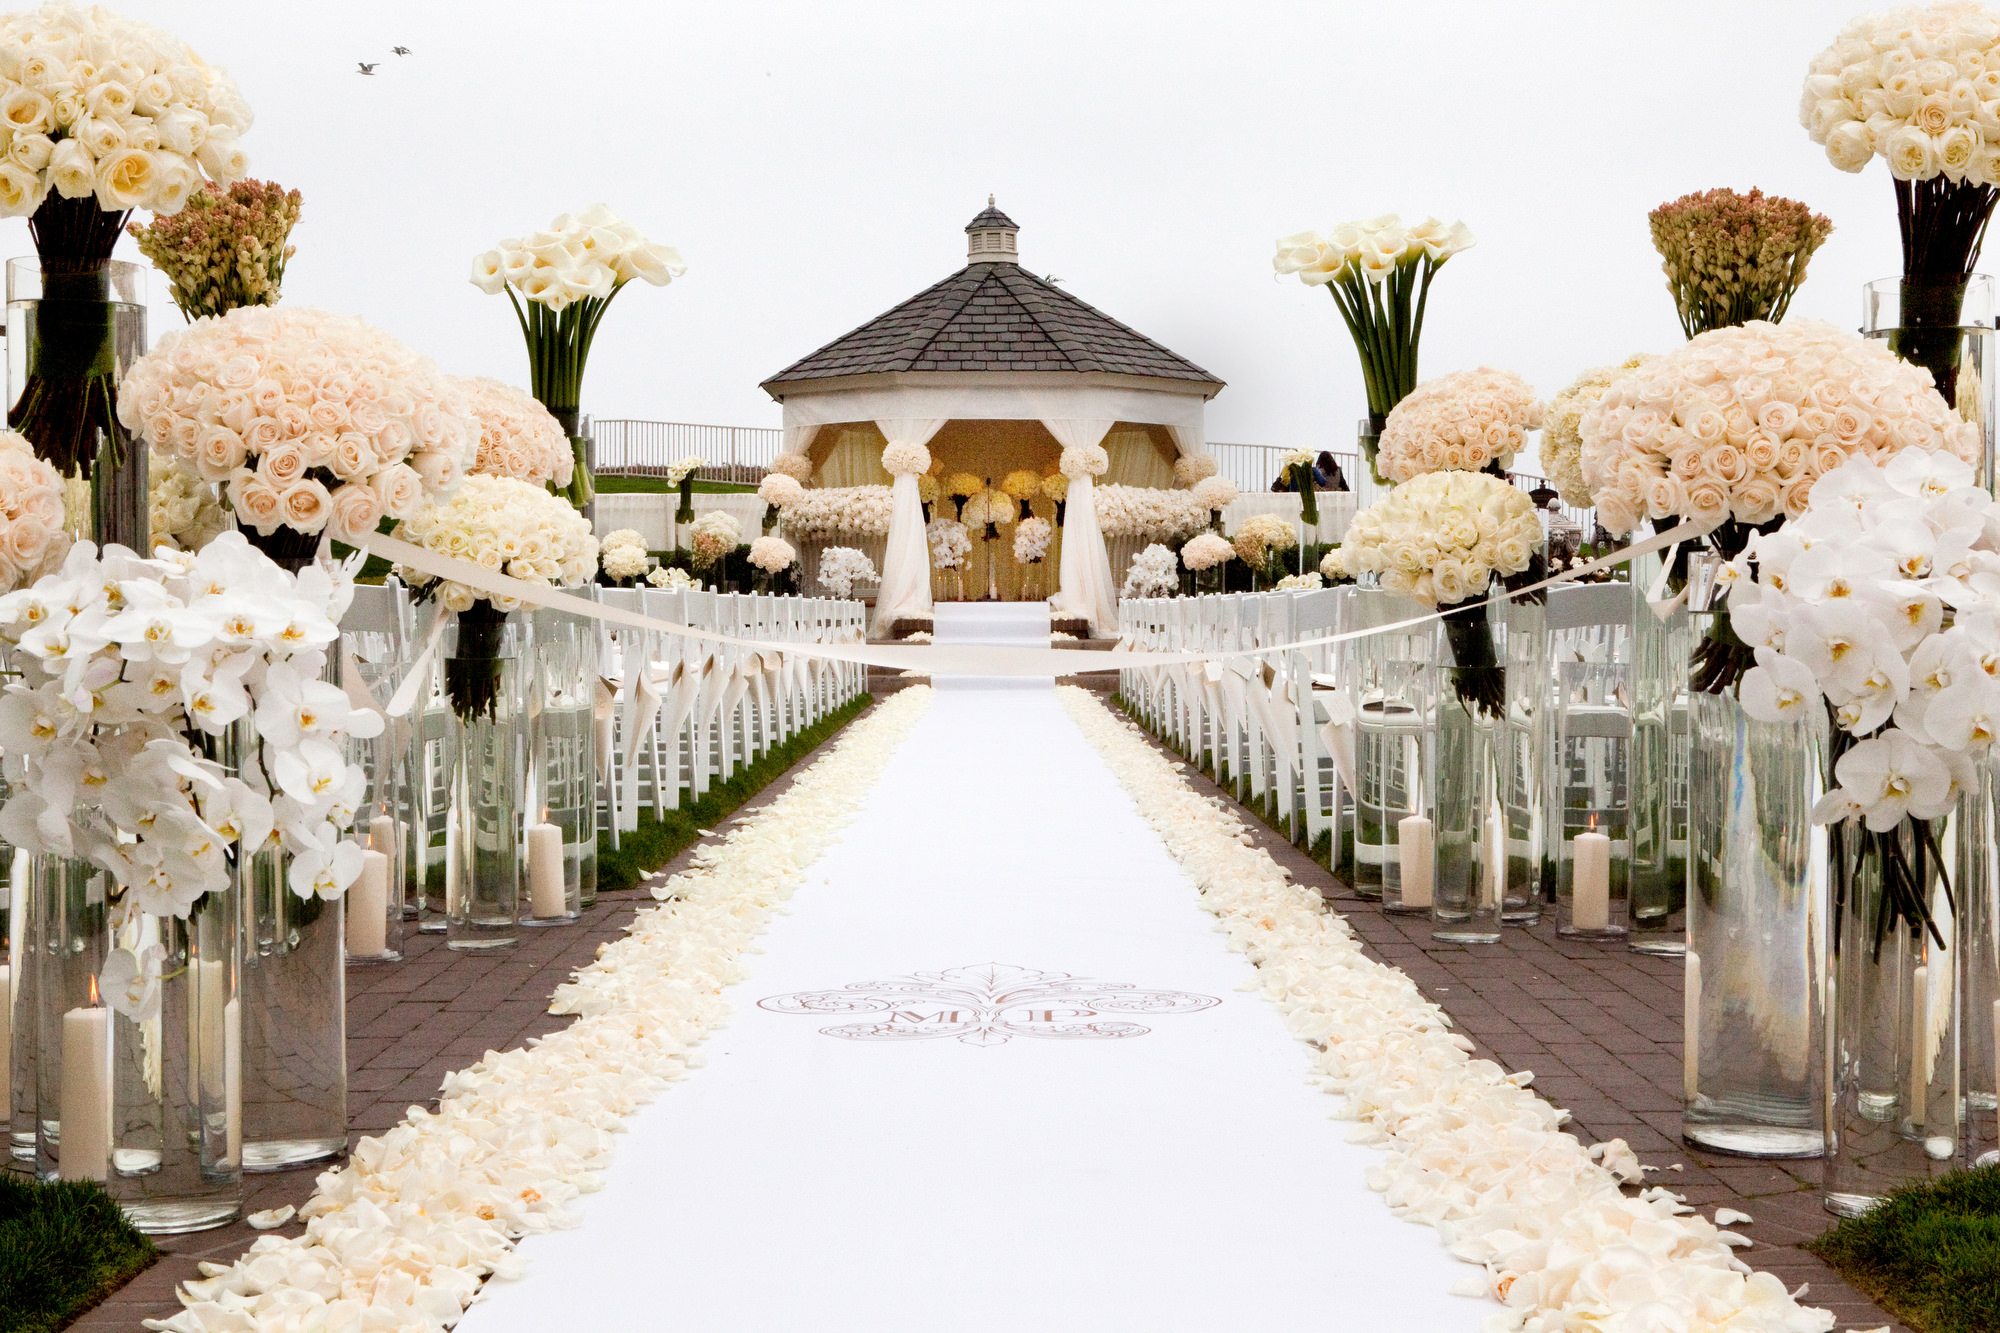 Luxurious Romantic Wedding | Ritz-Carlton Half Moon Bay | San Francisco | California - Bob & Dawn Davis Photography & Design